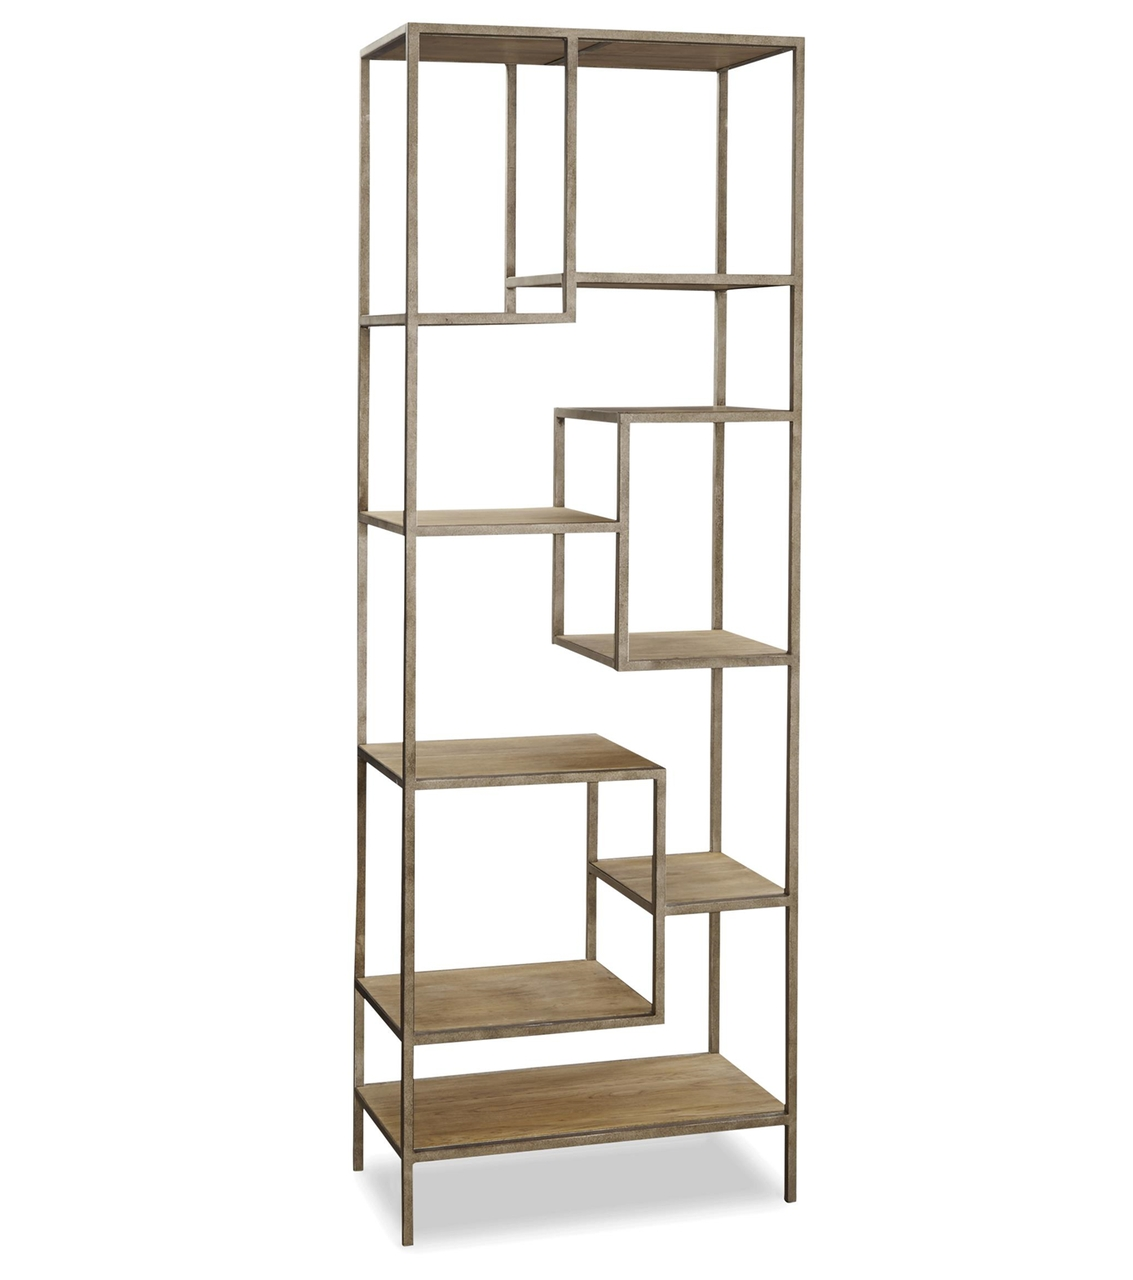 French Modern Industrial Wood + Metal Bookcase Etagere (View 10 of 15)